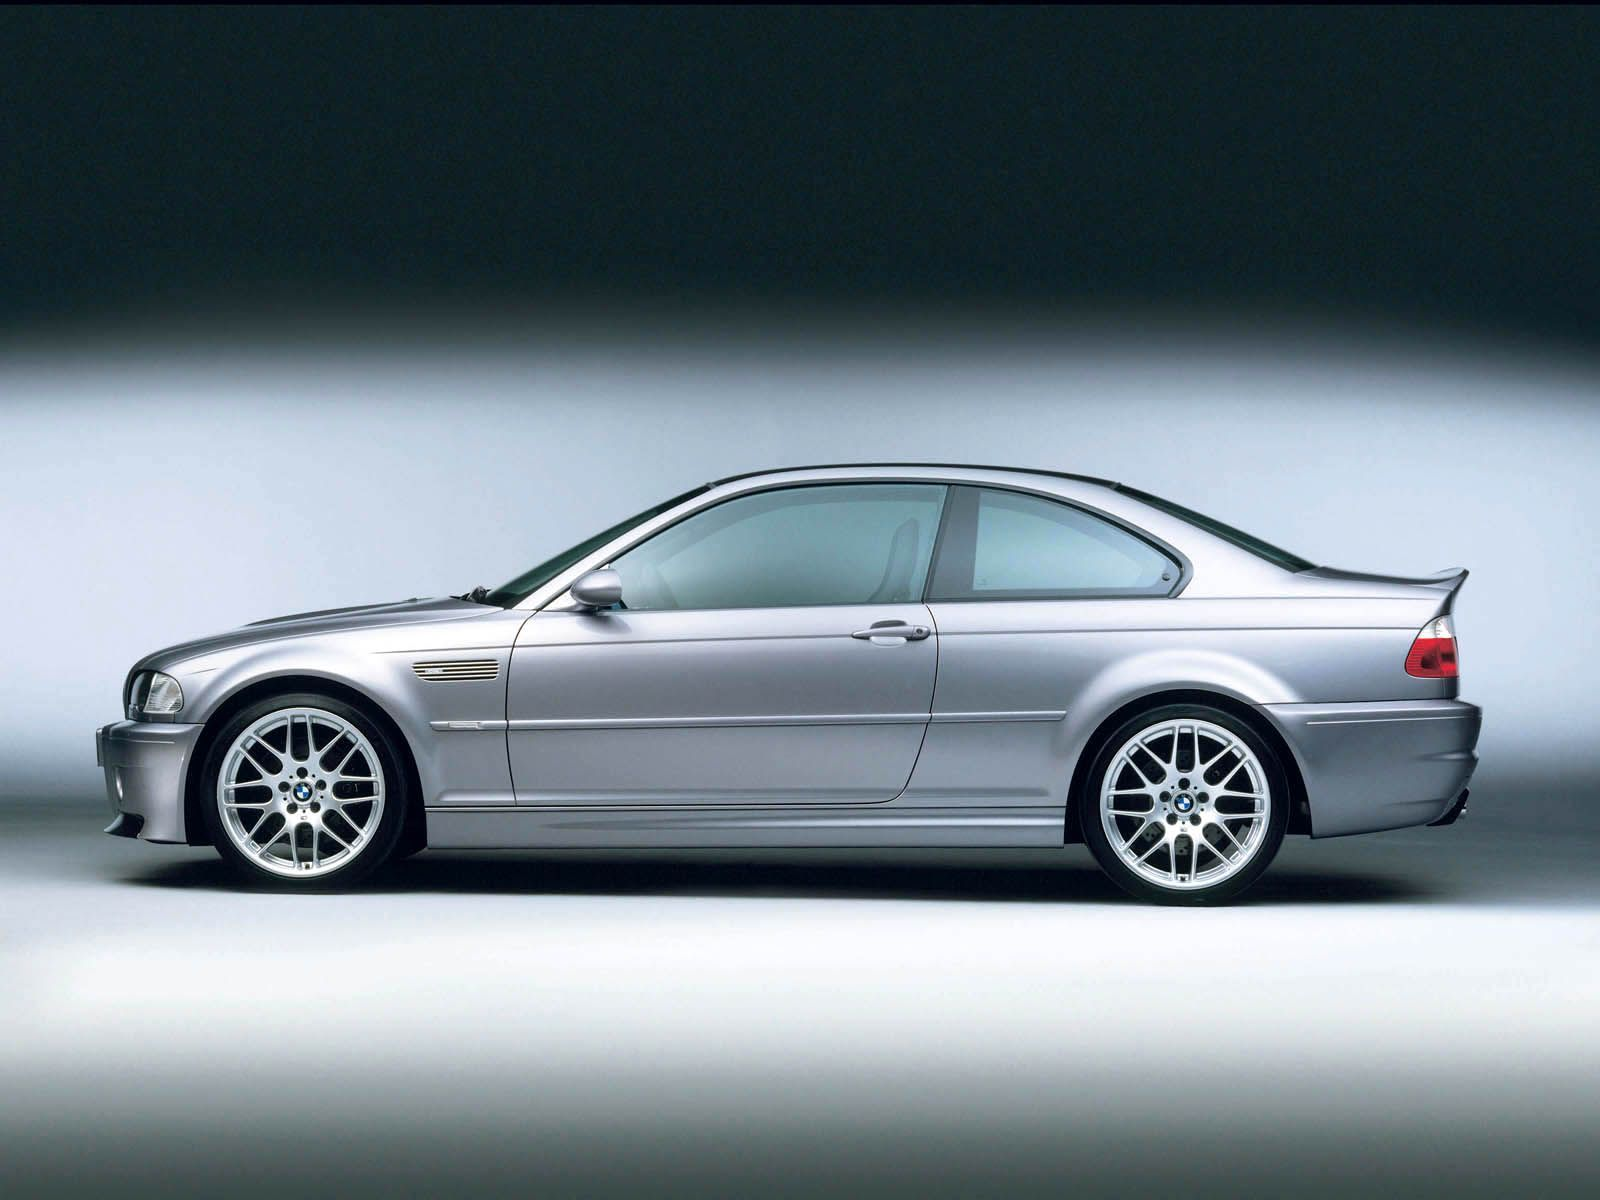 2004 bmw m3 csl gallery 510347 top speed. Black Bedroom Furniture Sets. Home Design Ideas